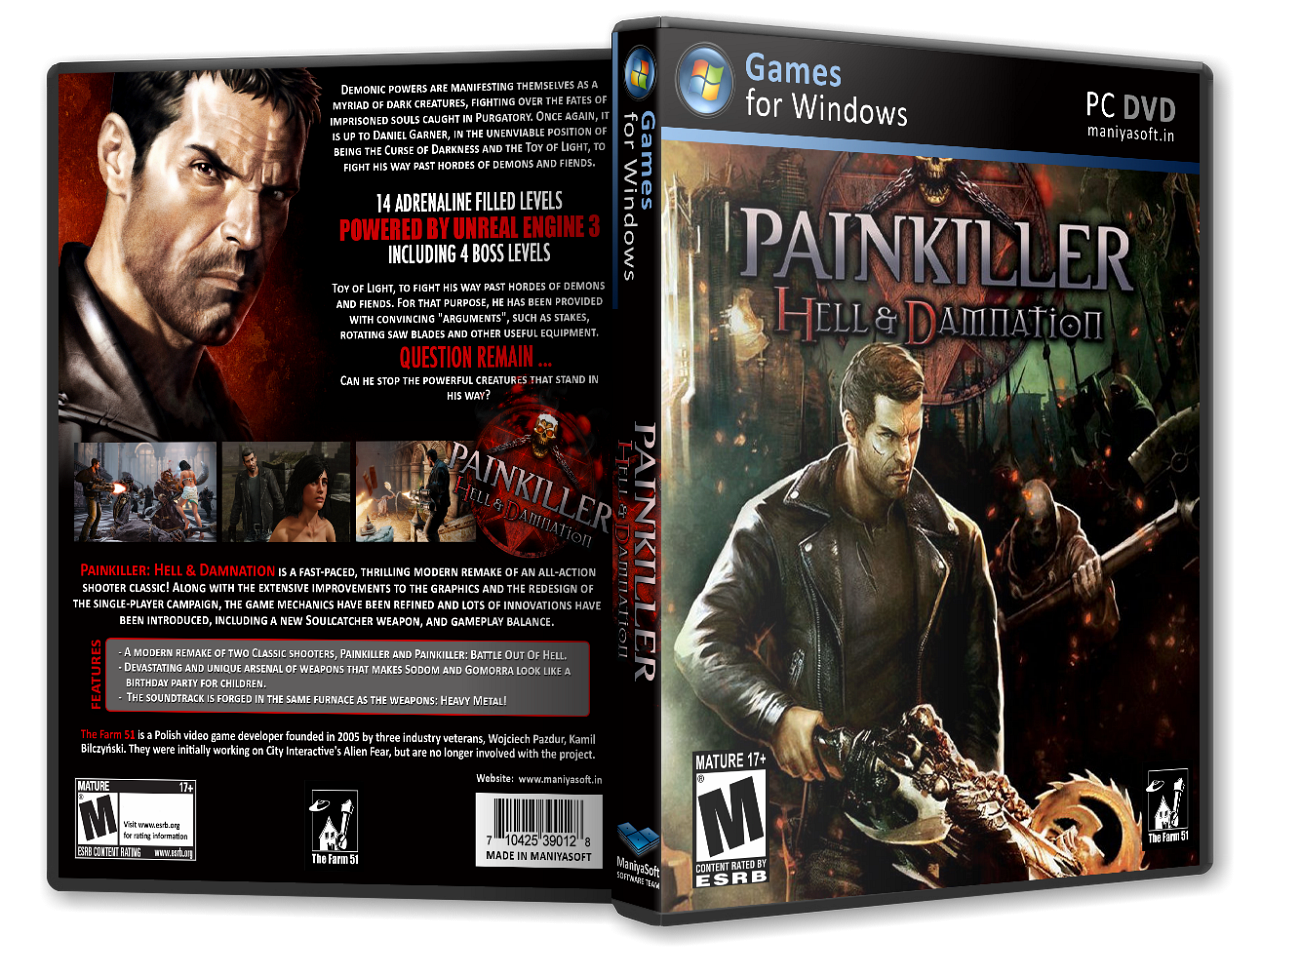 Painkiller: Hell & Damnation box cover